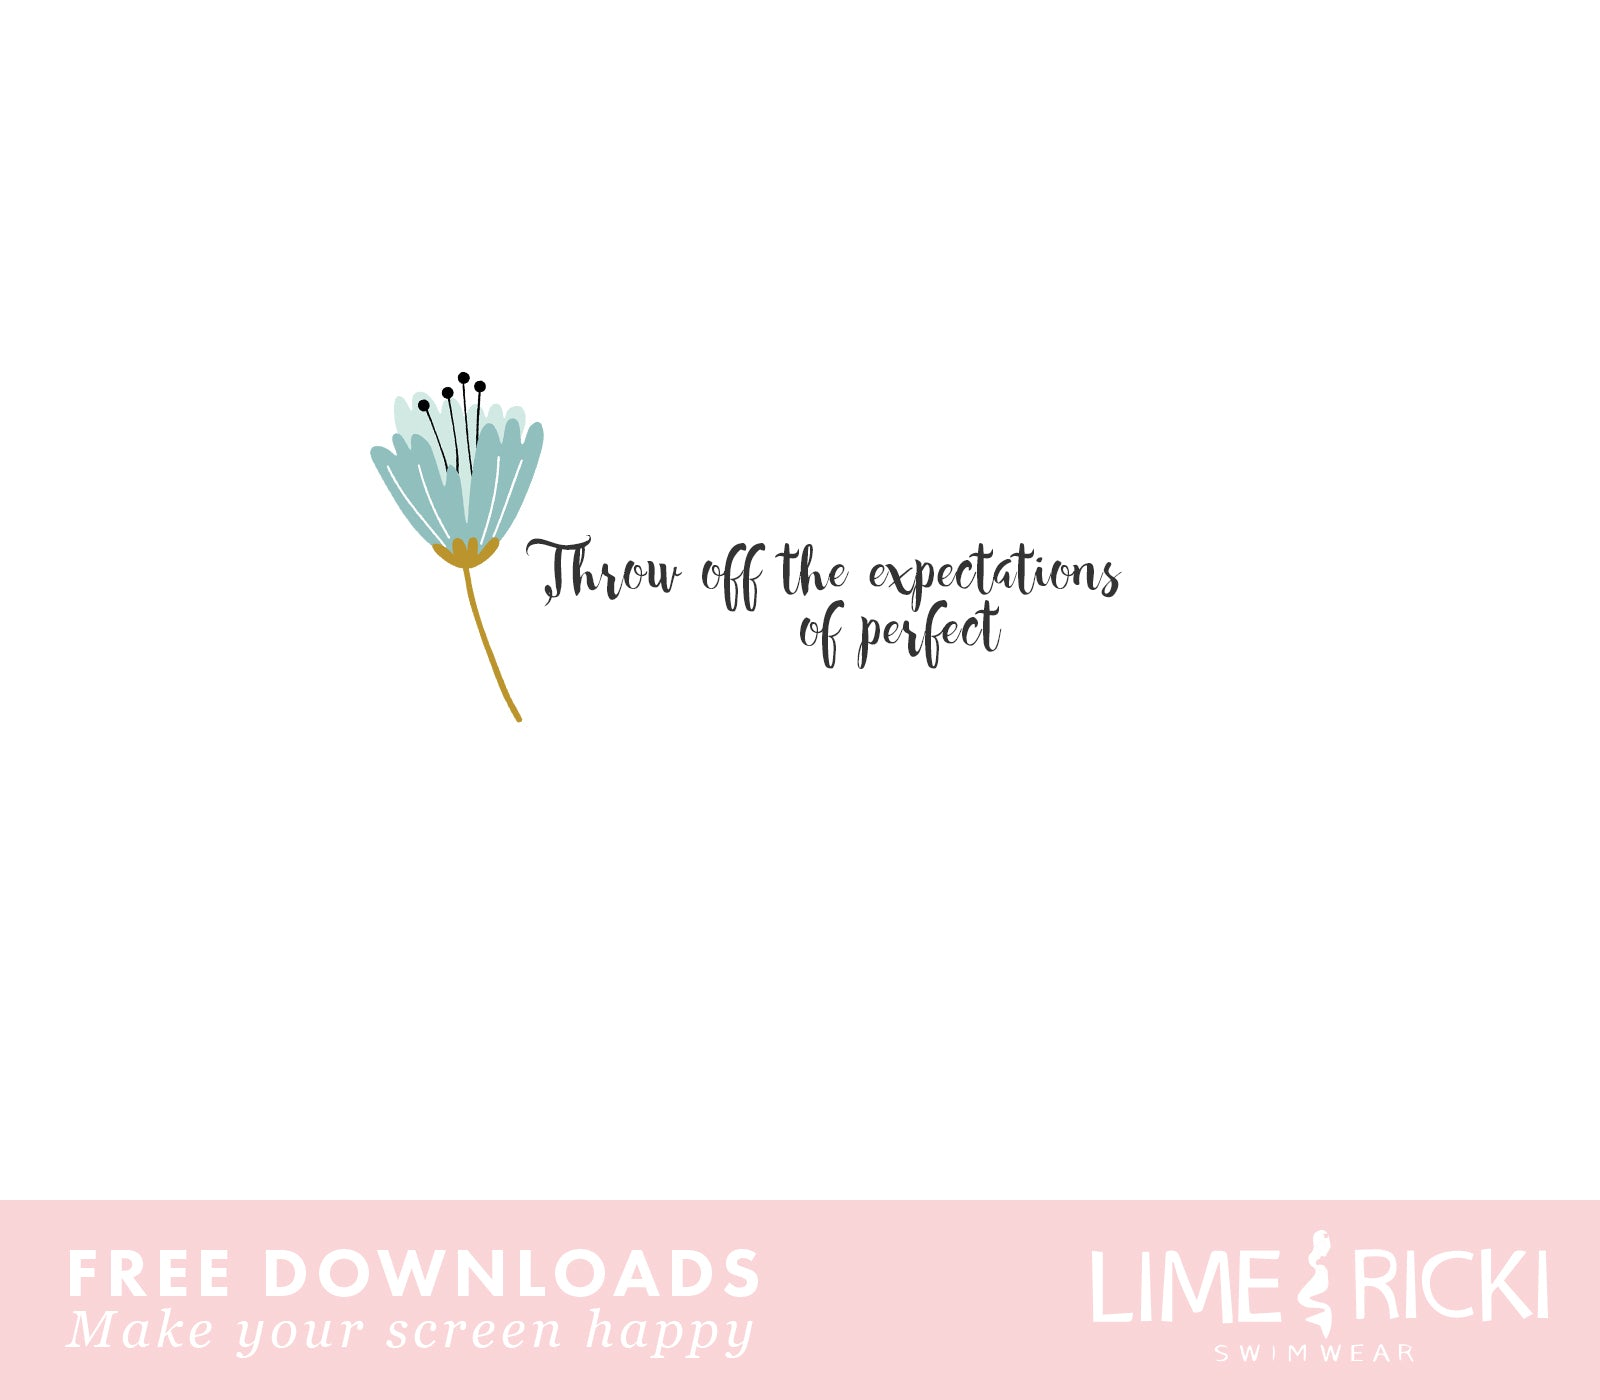 Live empowered with Lime Ricki no. 5. Love these quotes and free downloads!